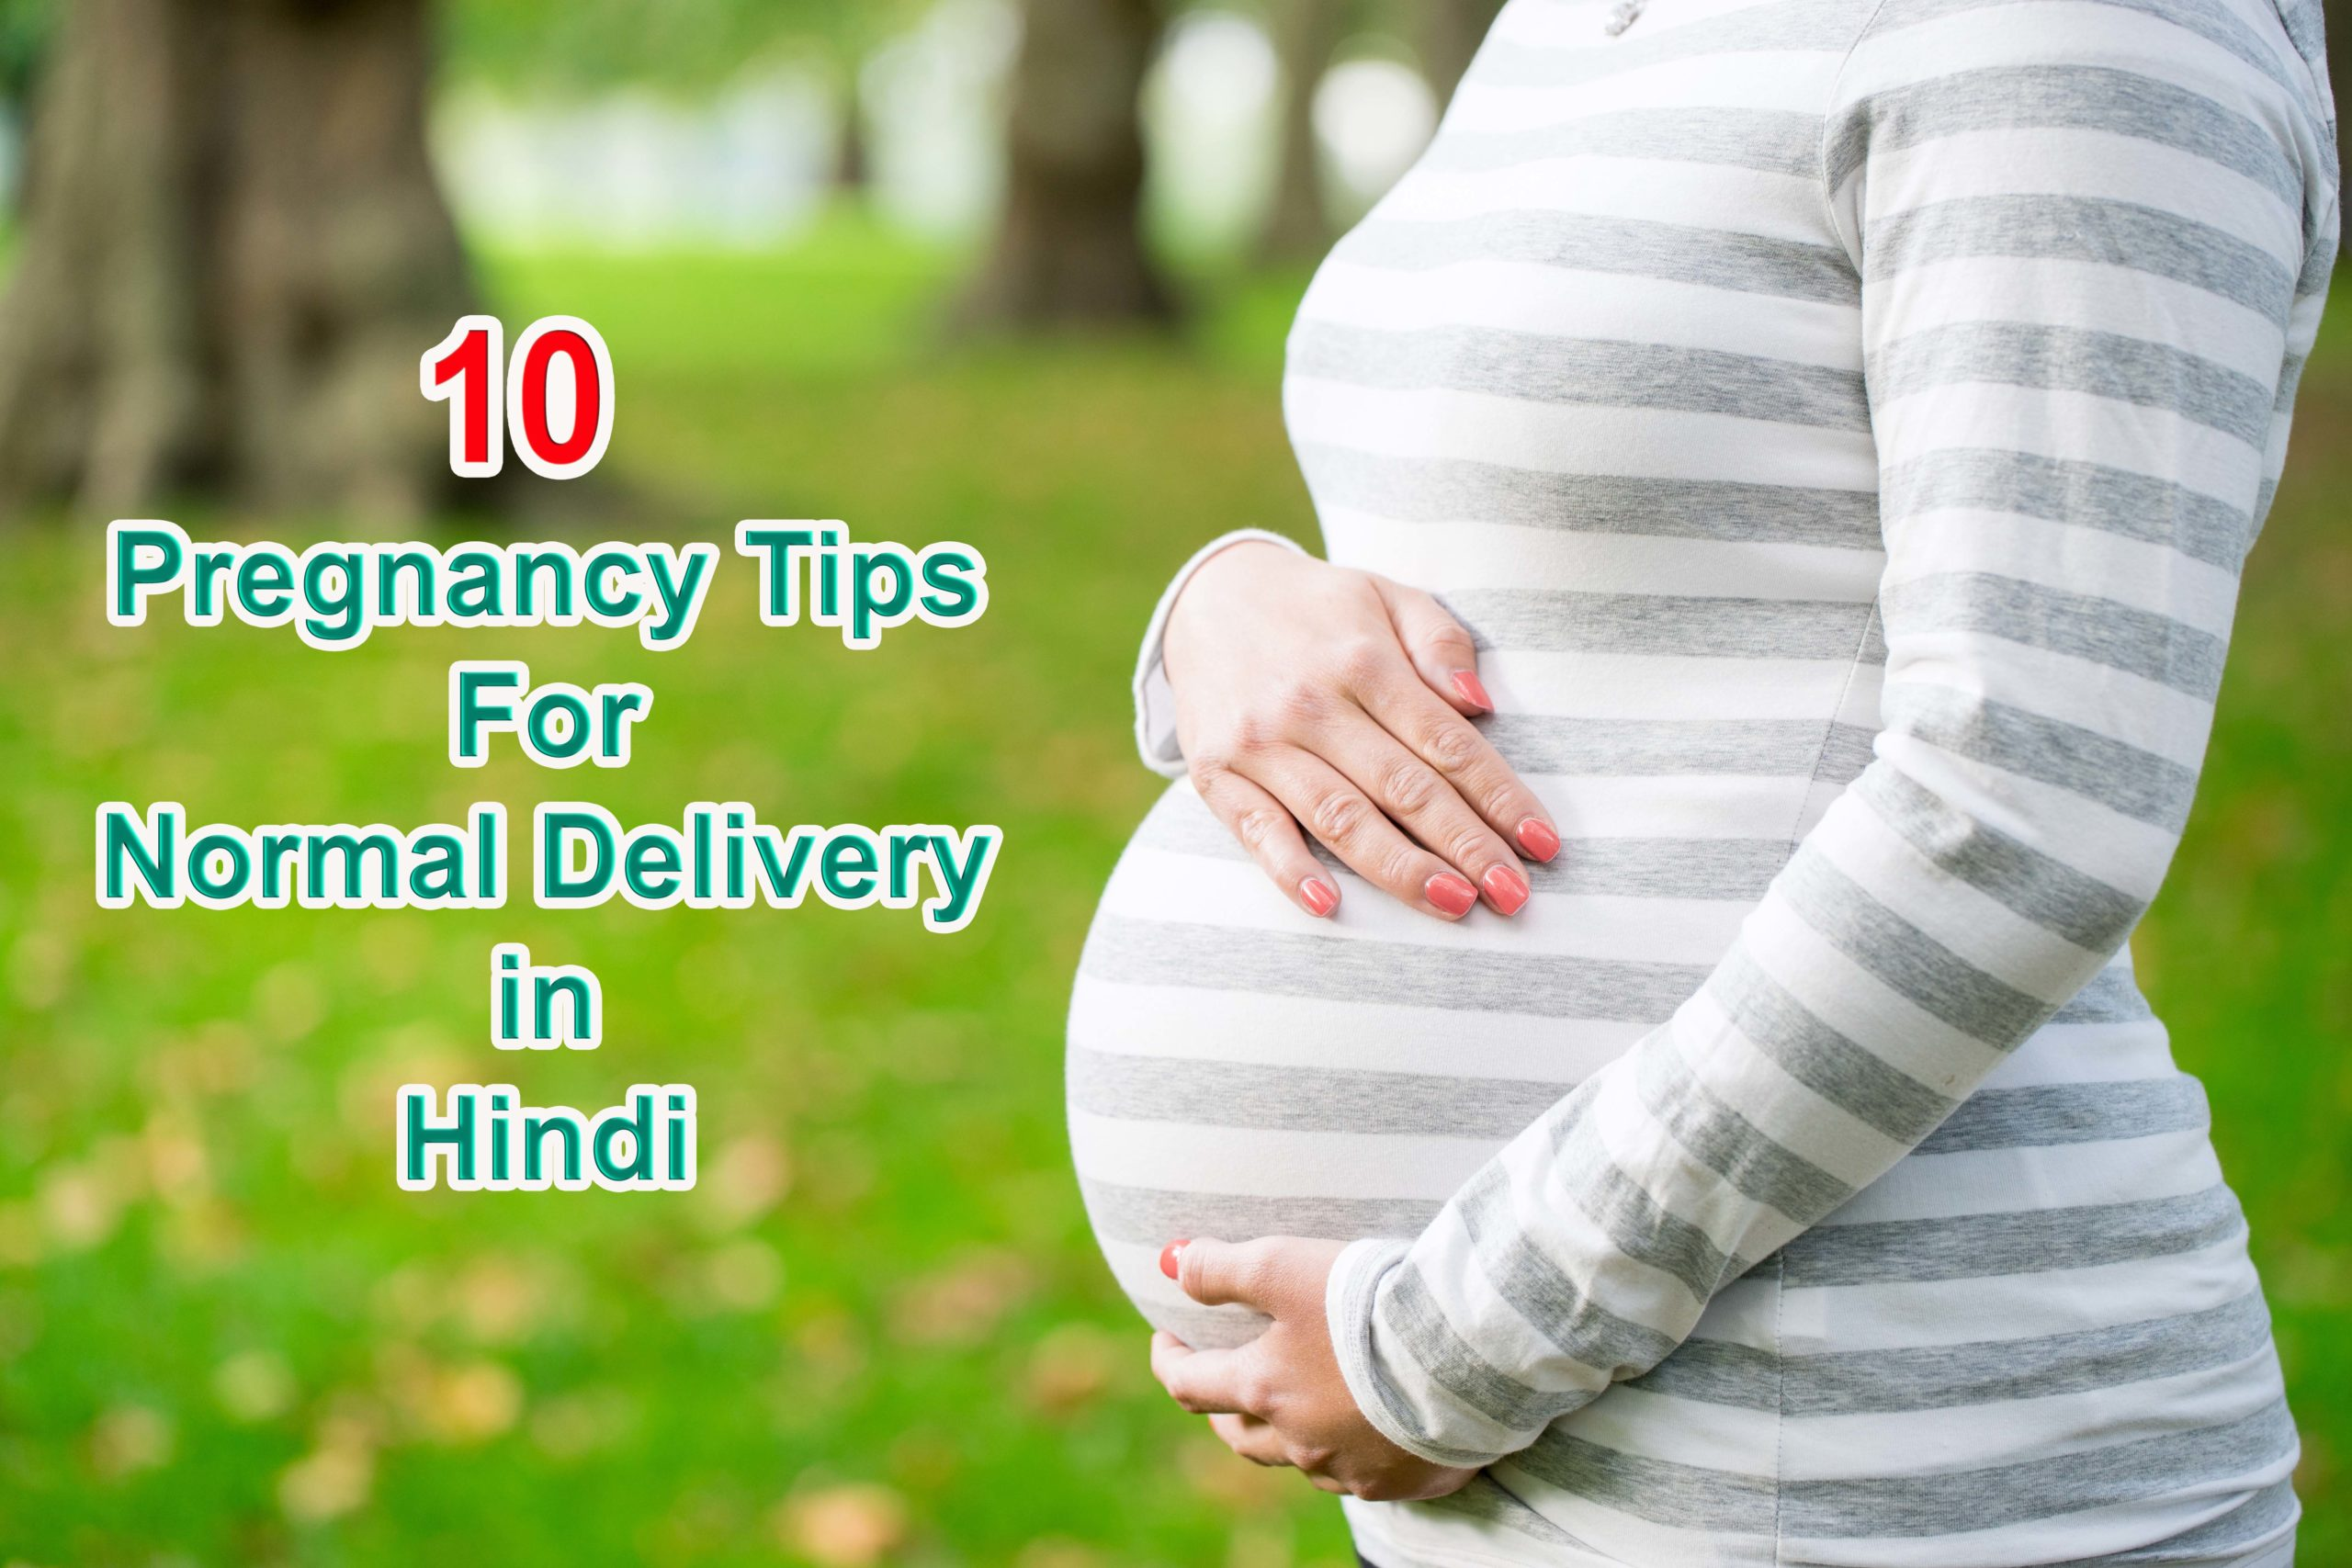 Normal Delivery ke Upay, Pregnancy Tips For Normal Delivery in Hindi